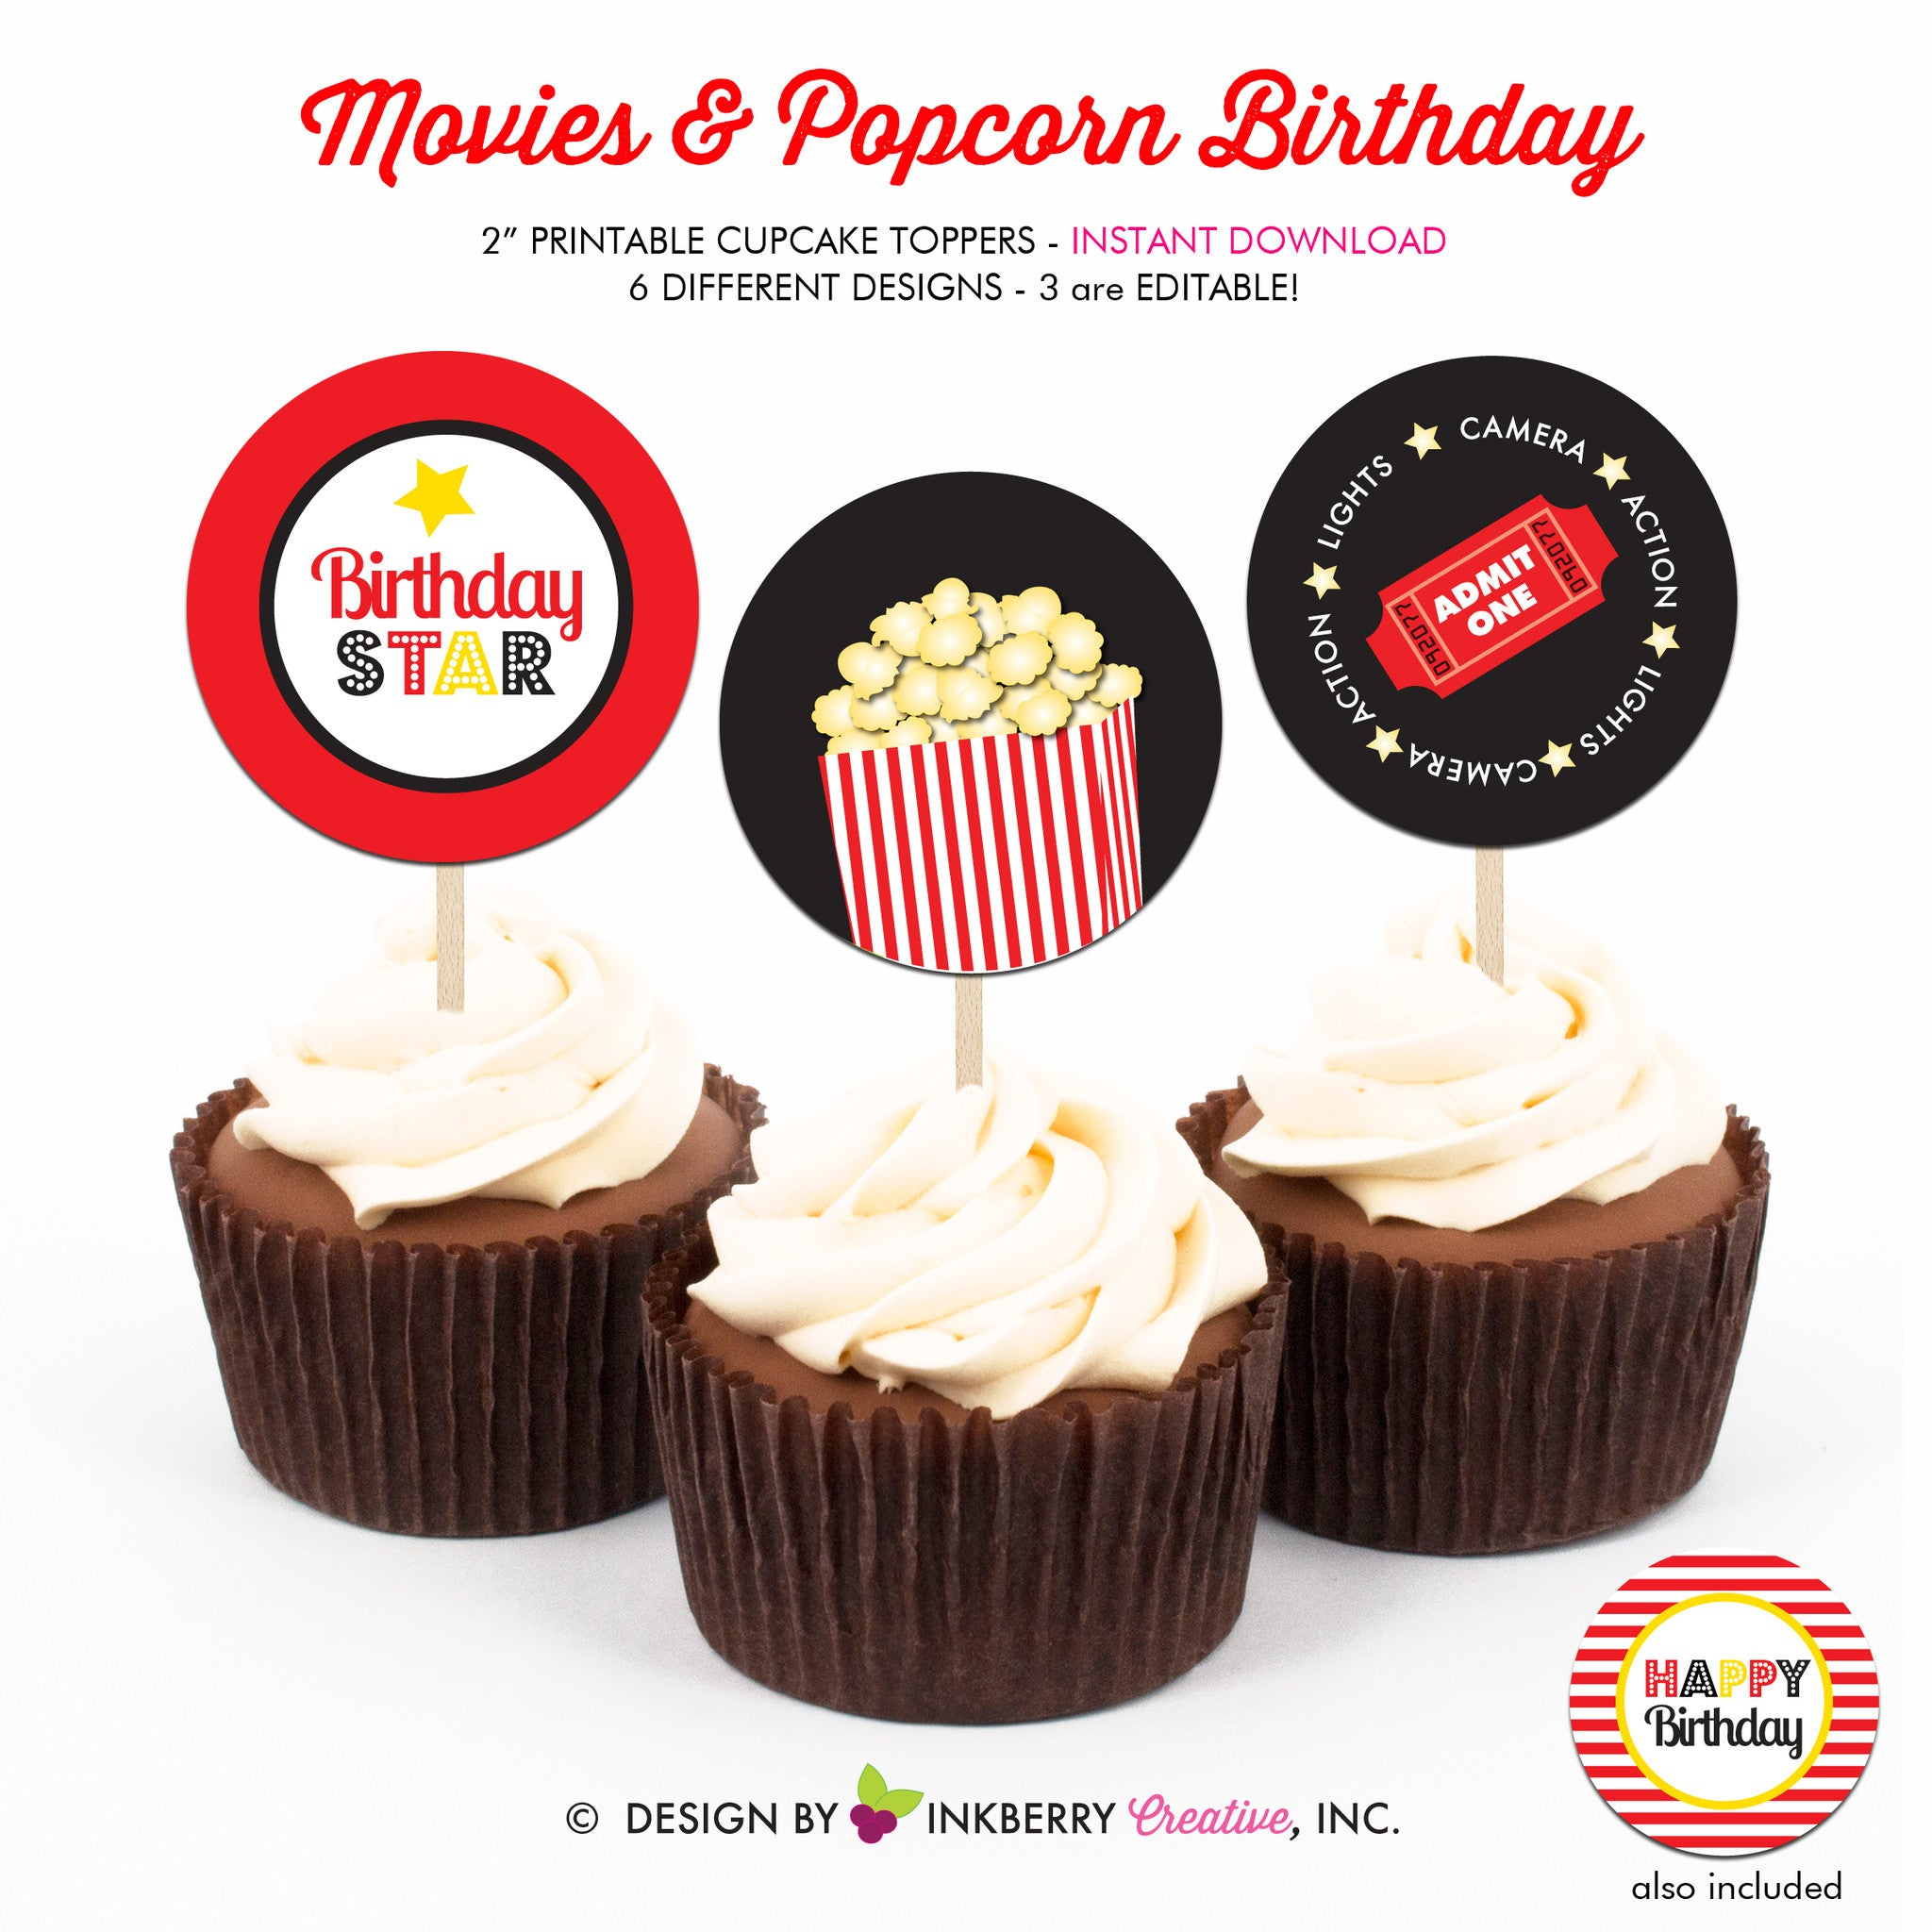 graphic regarding Printable Cupcakes Toppers known as Films and Popcorn - Printable Cupcake Toppers - Instantaneous Obtain PDF Report